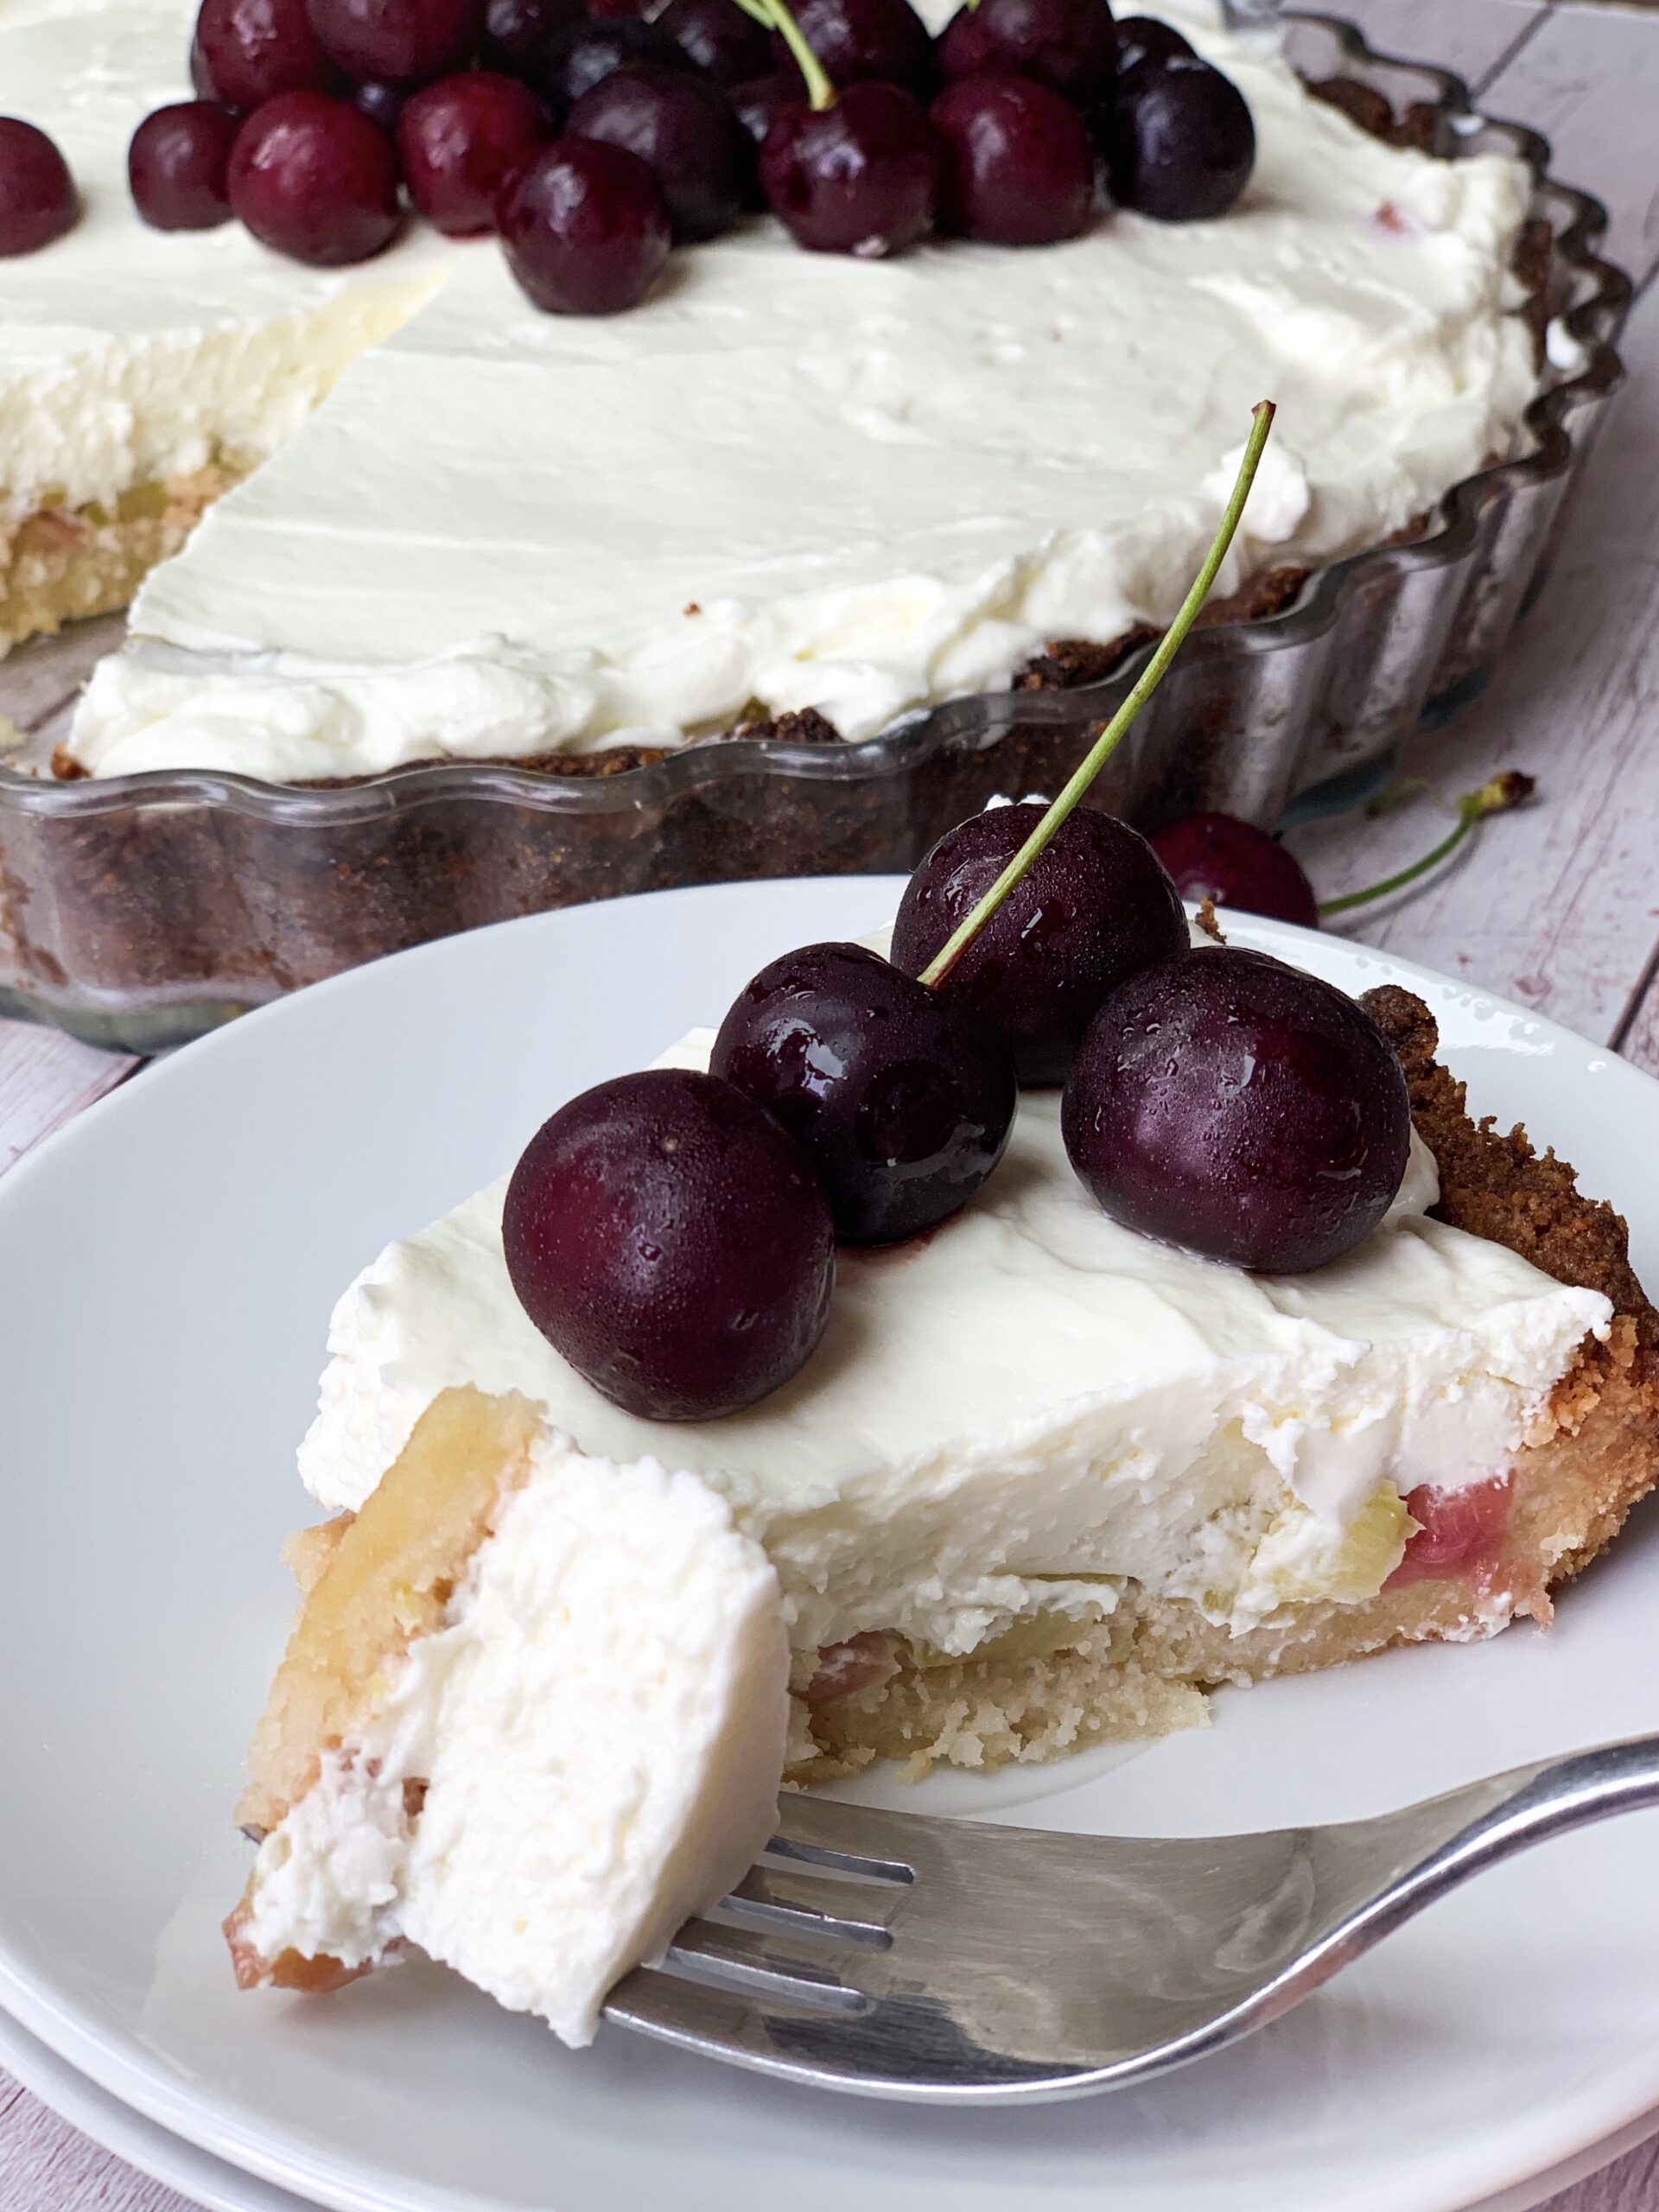 Piece of low carb rhubarb cheesecake with low carb pie crust and cherries on top